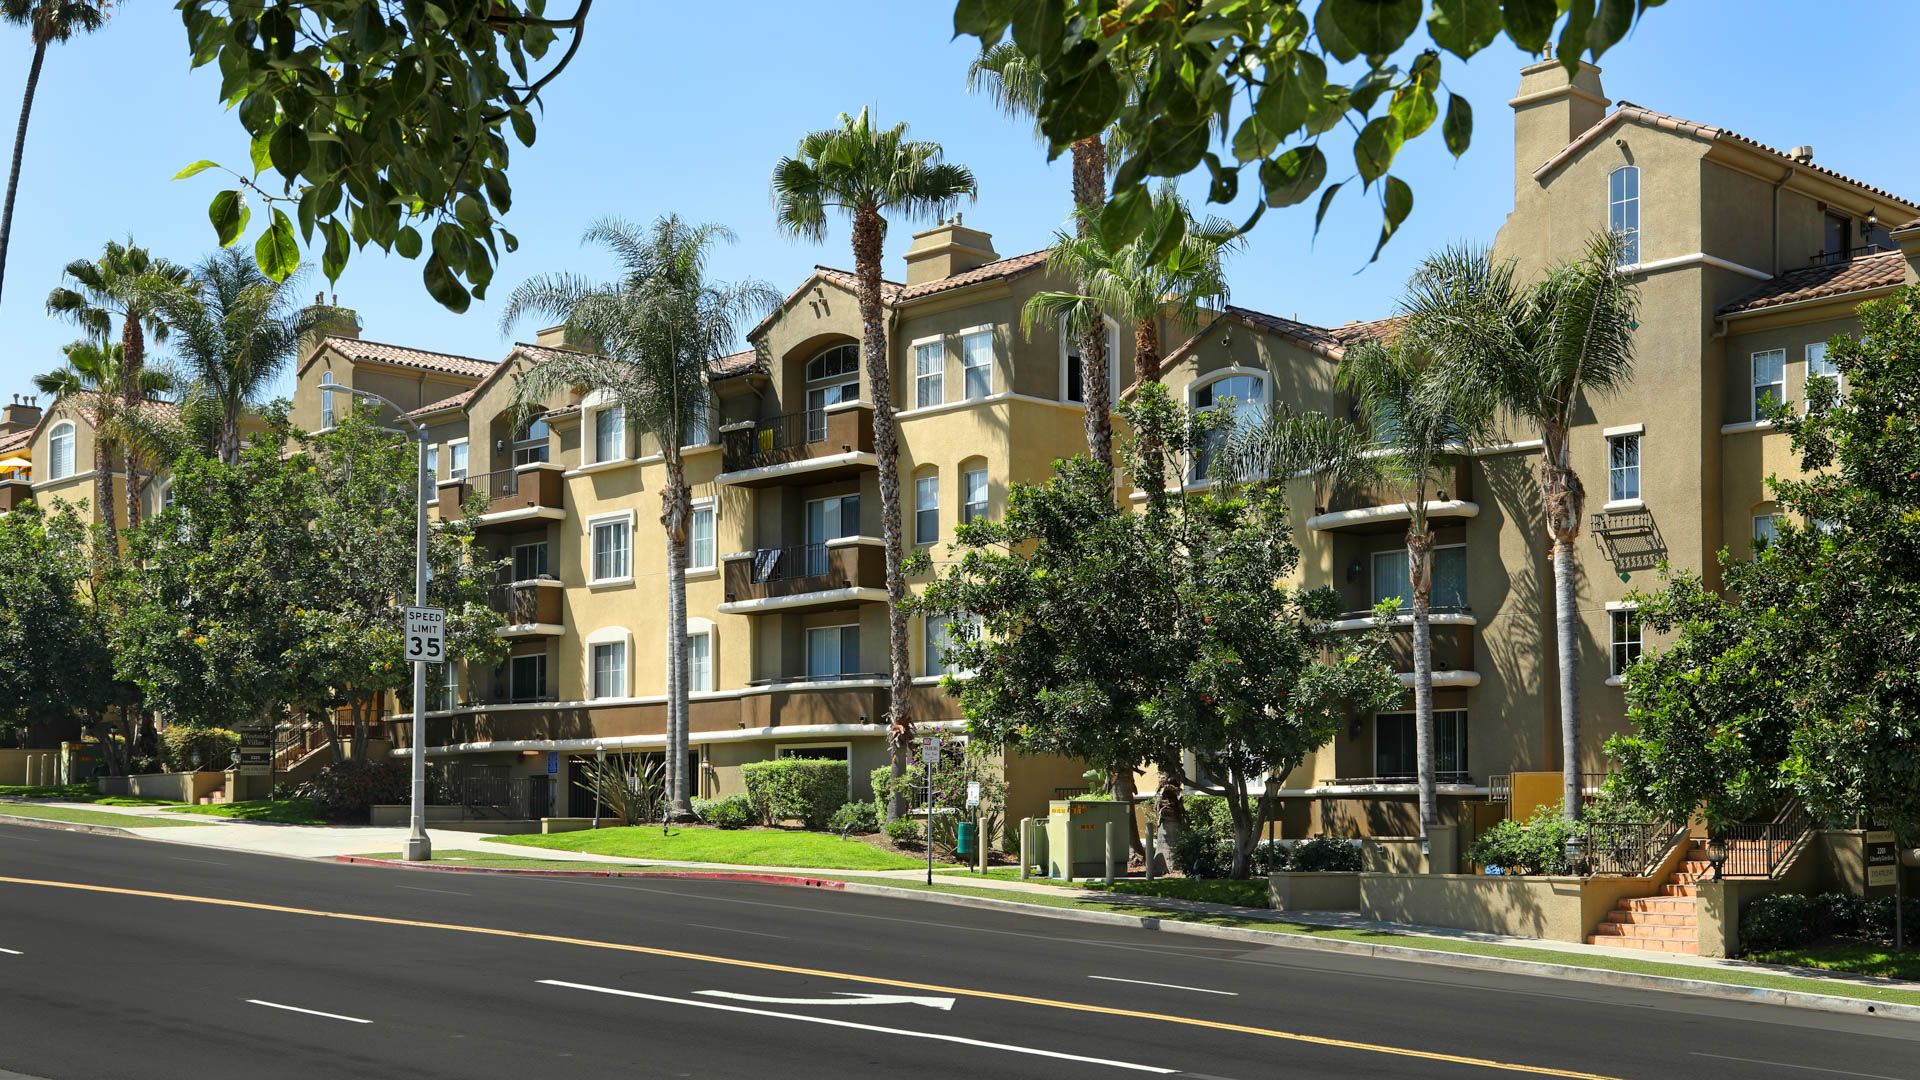 Hollywood villa apartments los angeles latest for Villas apartments